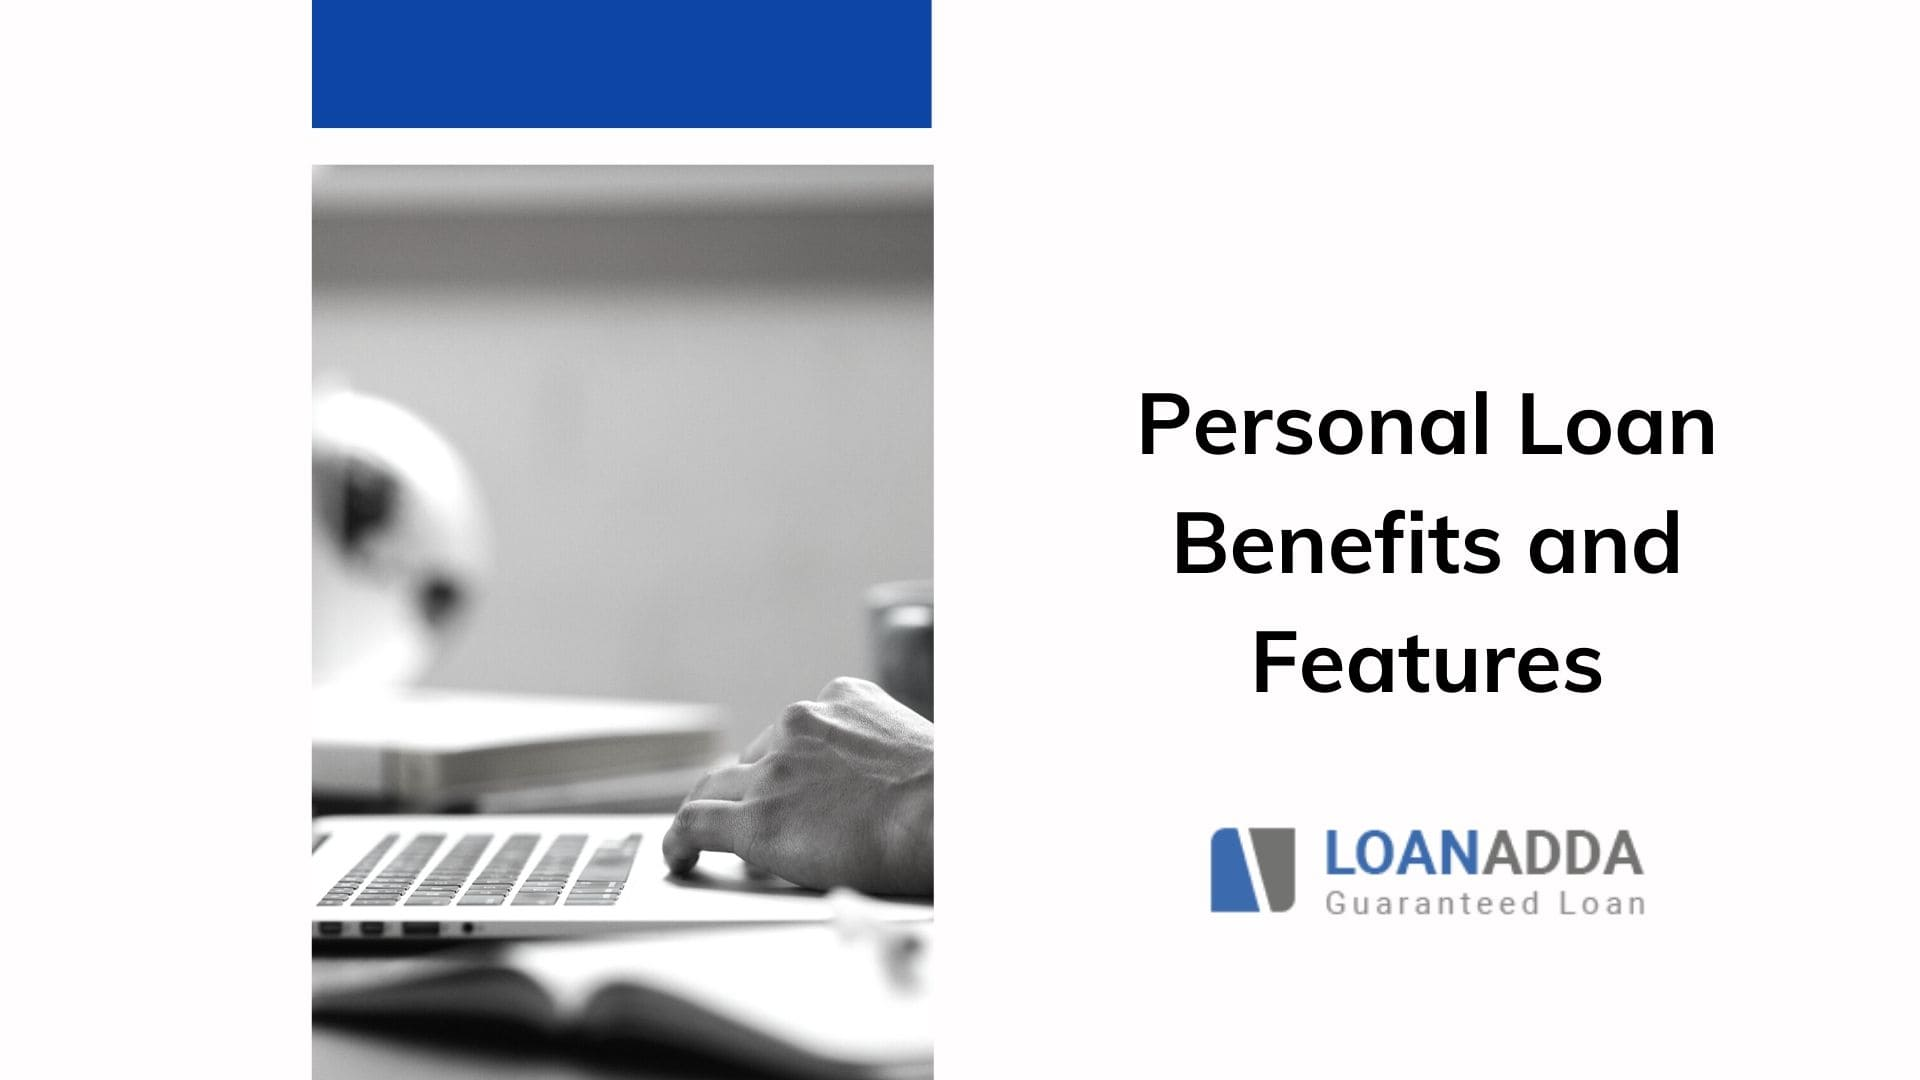 13 Benefits That You Should Know About Personal Loan